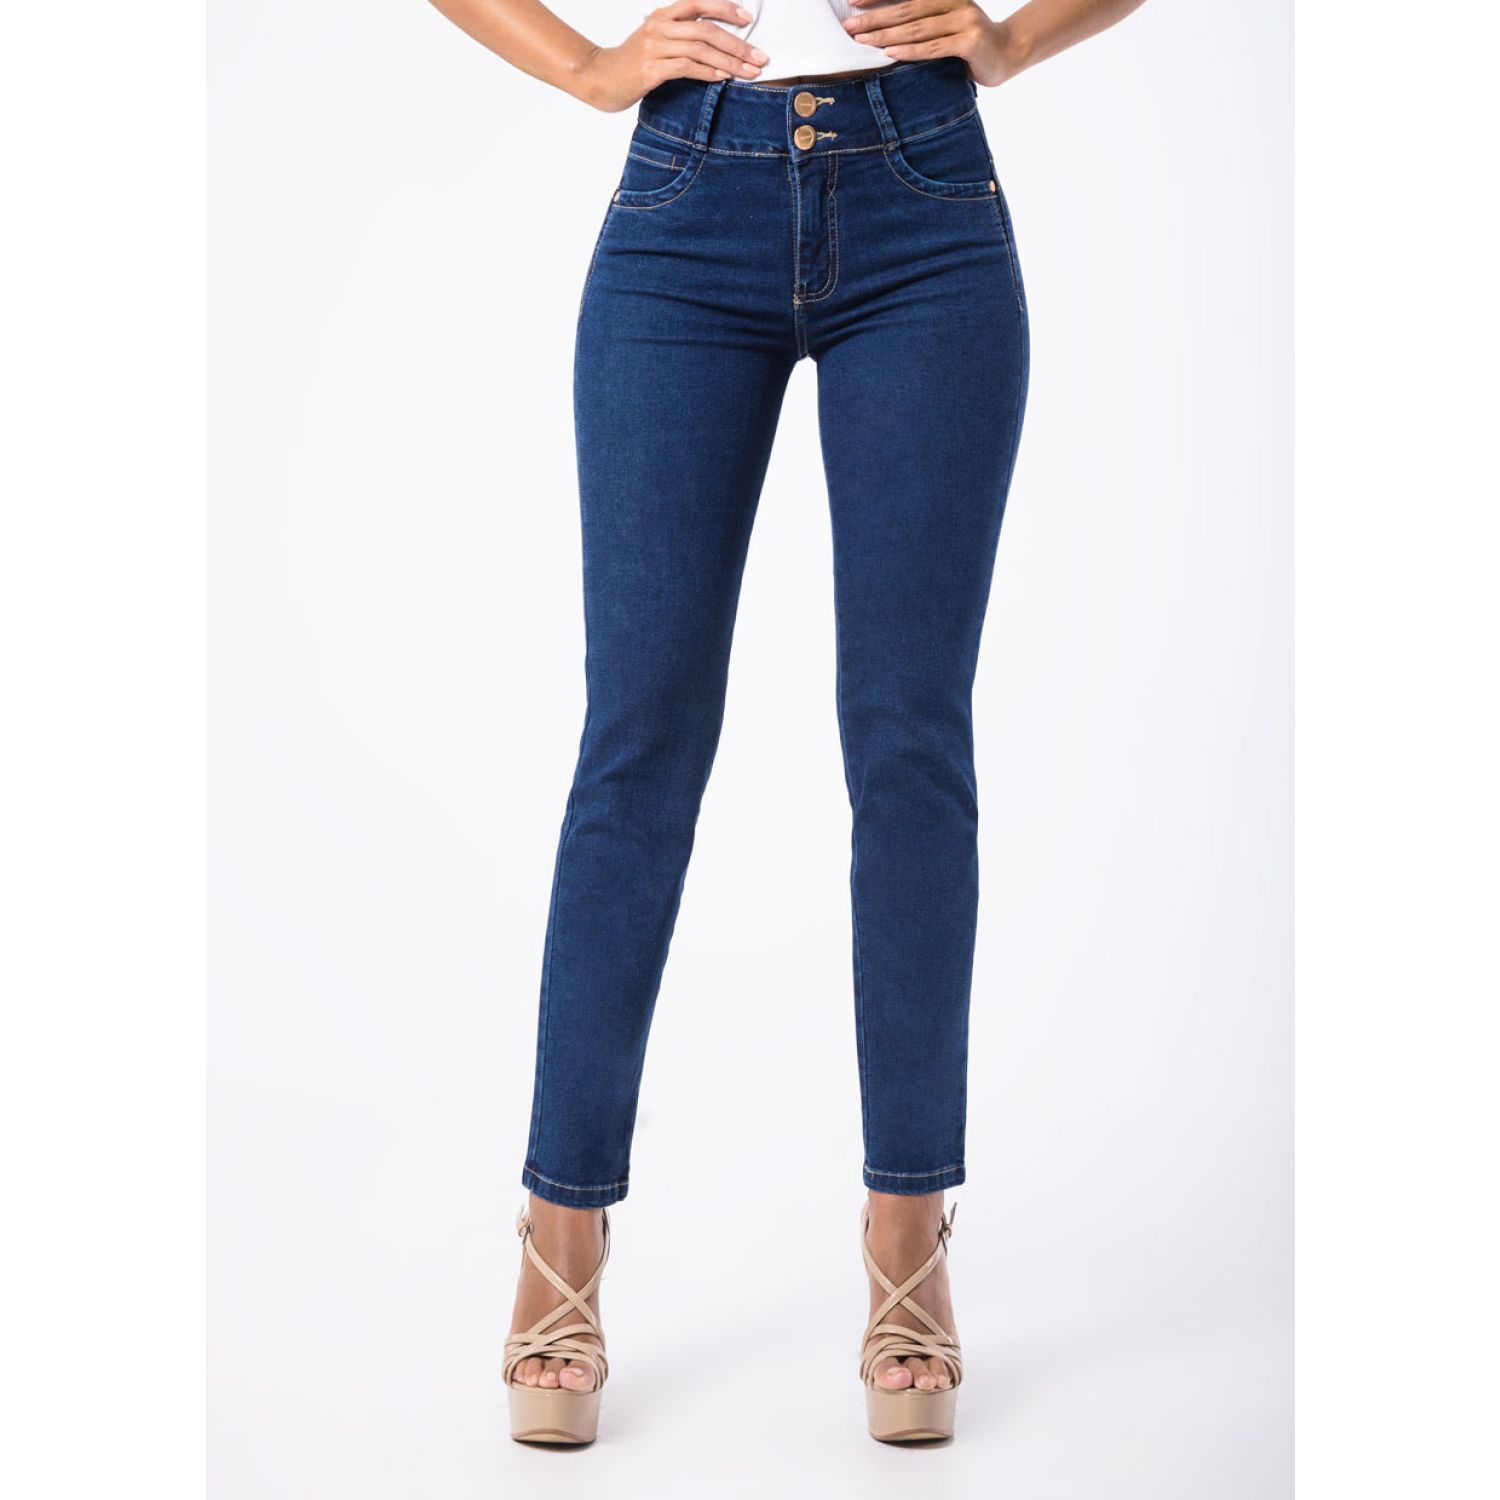 PIONIER Jeans Cnt/Rct Larissa OLD WASH Casual